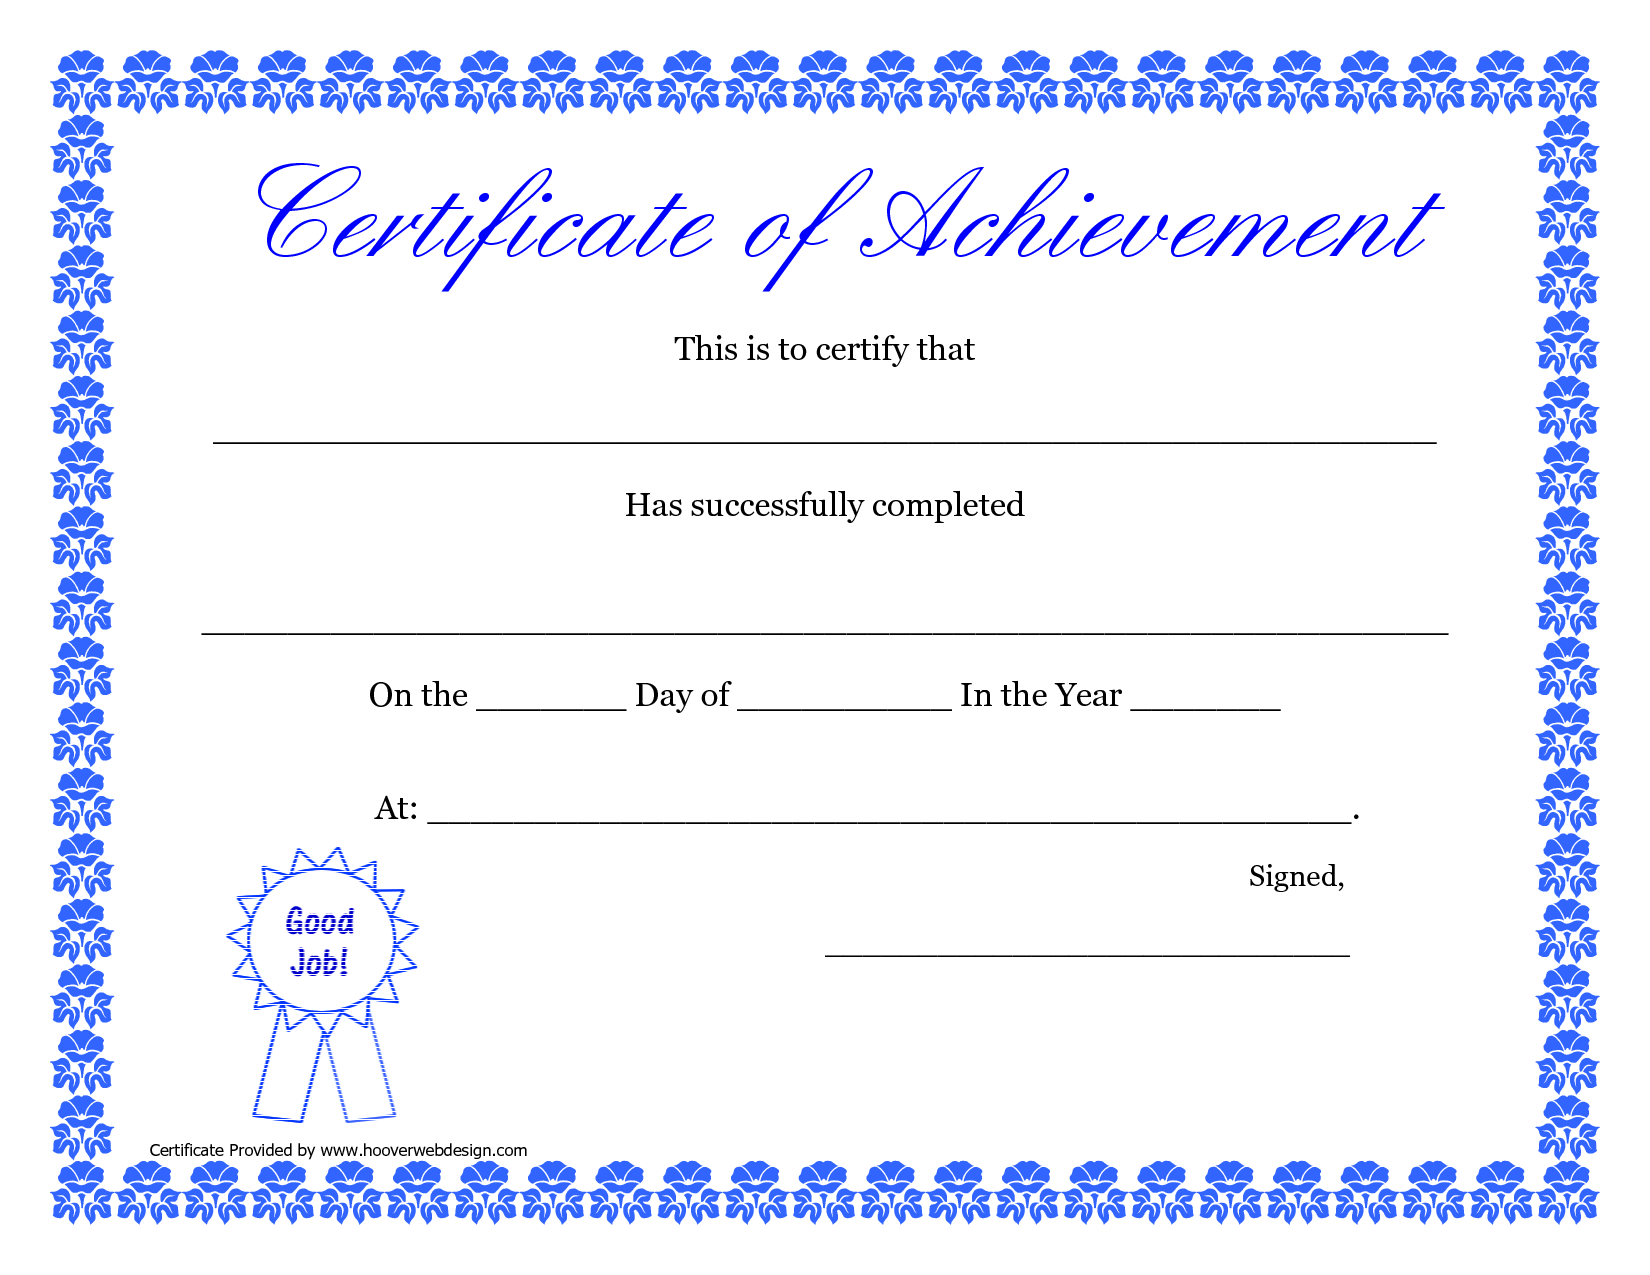 Printable hard work certificates kids printable certificate of certificate template doc printable gift certificates word business plan templates achievement best free home design idea inspiration yadclub Image collections